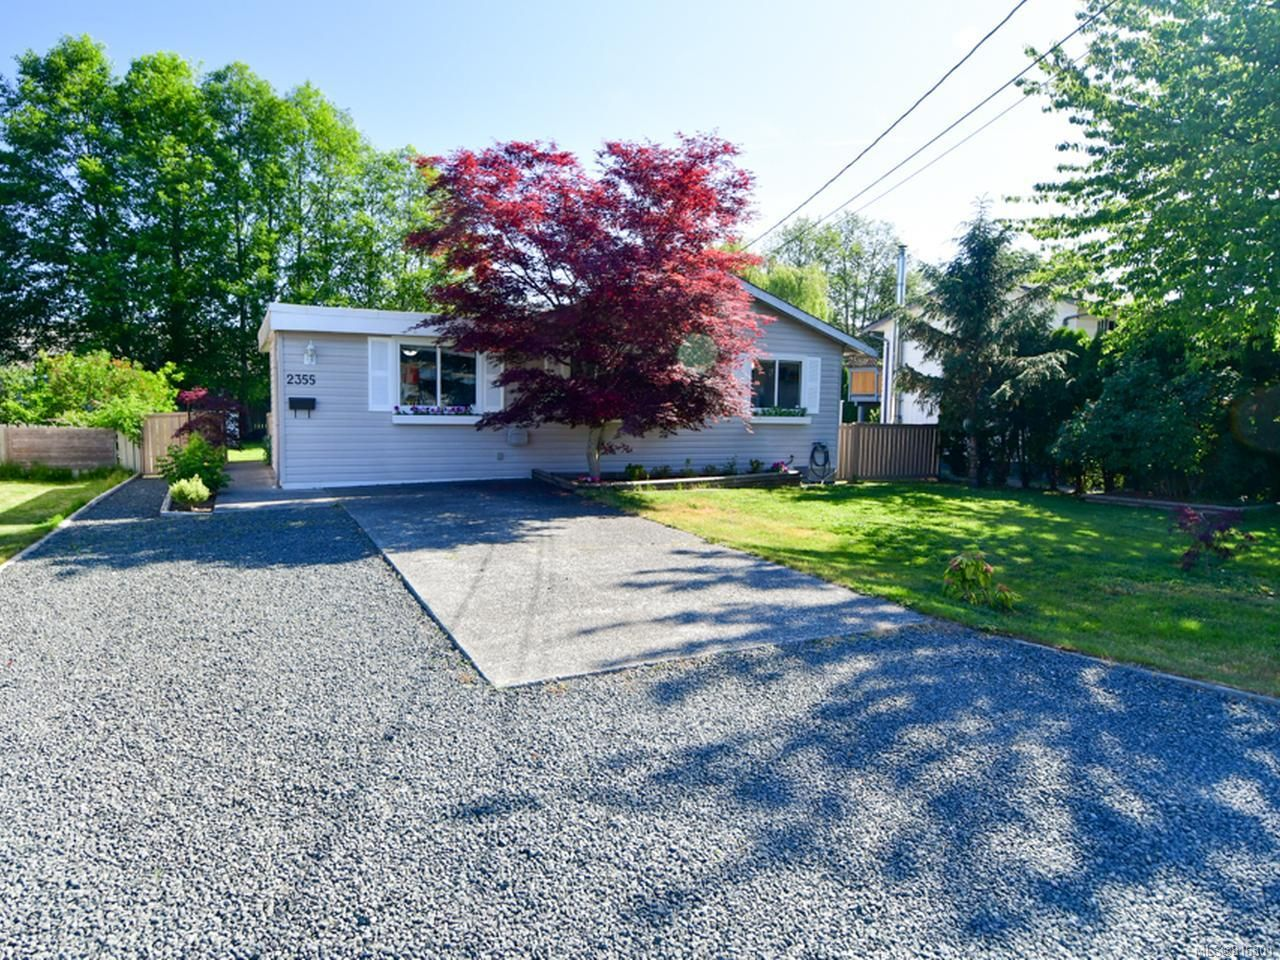 Main Photo: 2355 EARDLEY ROAD in CAMPBELL RIVER: CR Willow Point House for sale (Campbell River)  : MLS®# 816301